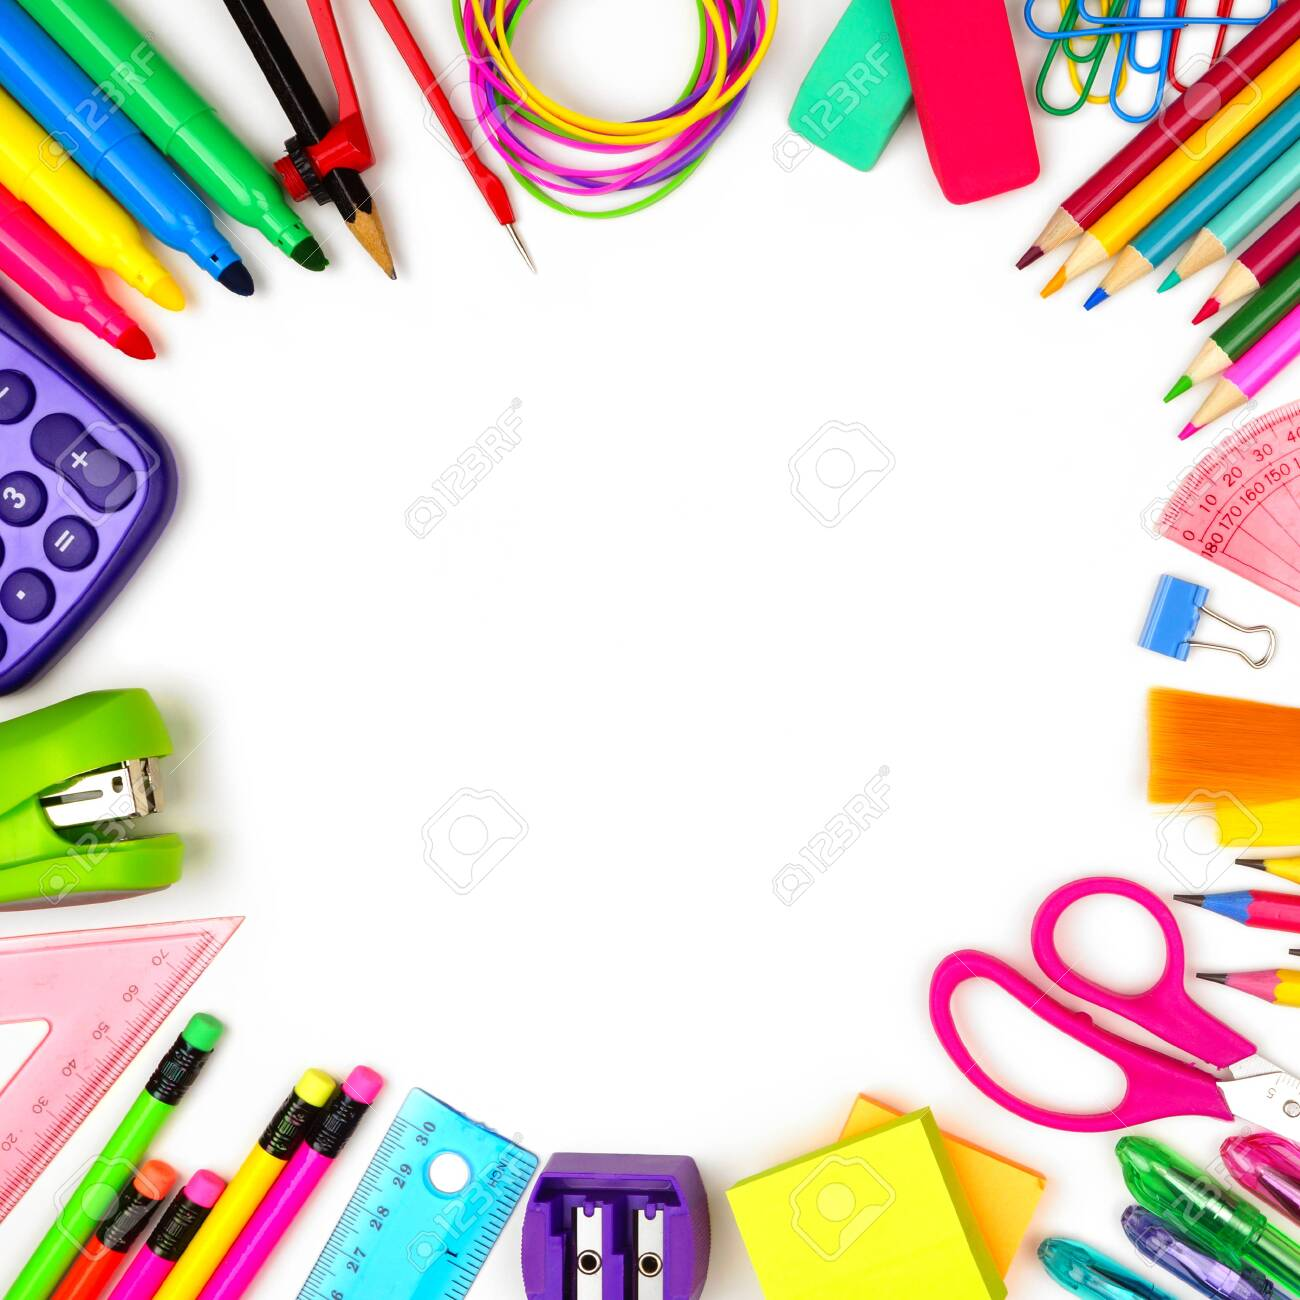 School supplies square frame, top view isolated on a white background with copy space, back to school concept - 126663629